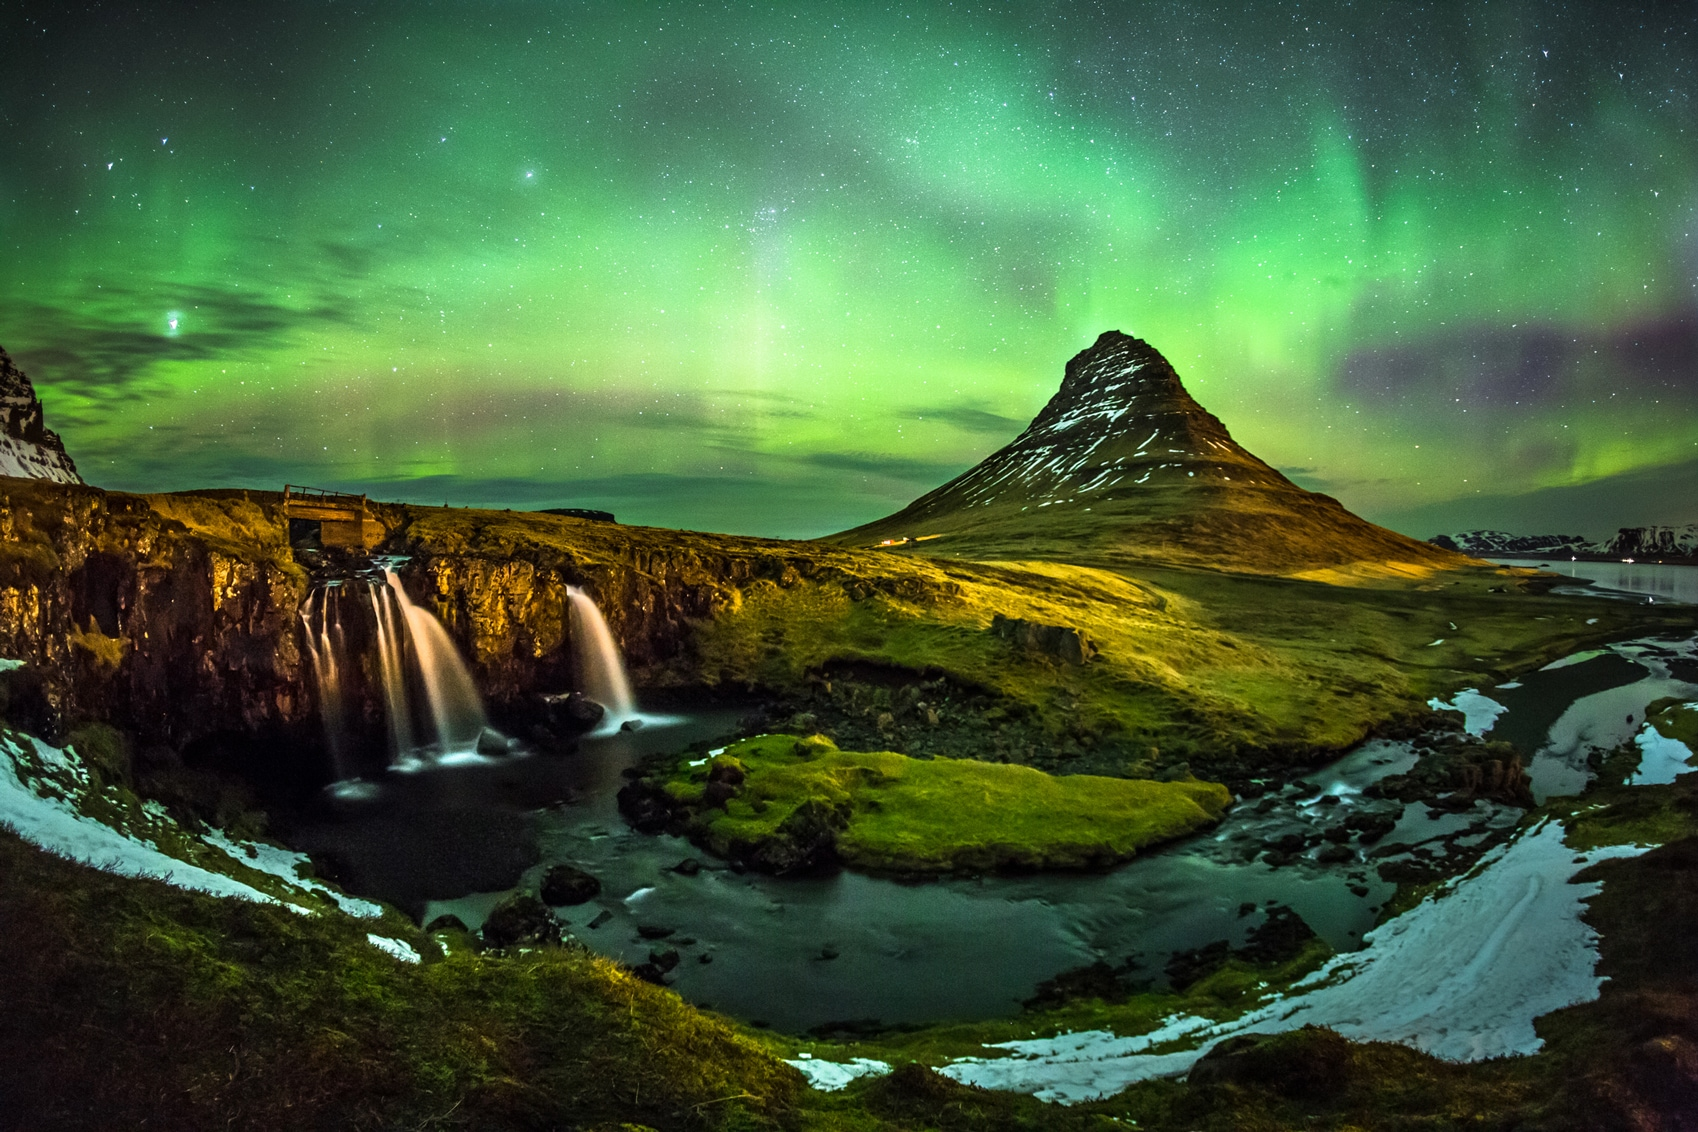 about The Northern Lights Aurora-Borealis-Mount-Kirkjufell-Iceland-www.istockphoto.com_gb_photo_aurora-borealis-at-mount-kirkjufell-iceland-gm480099052-68480955-SuppalakKlabdee